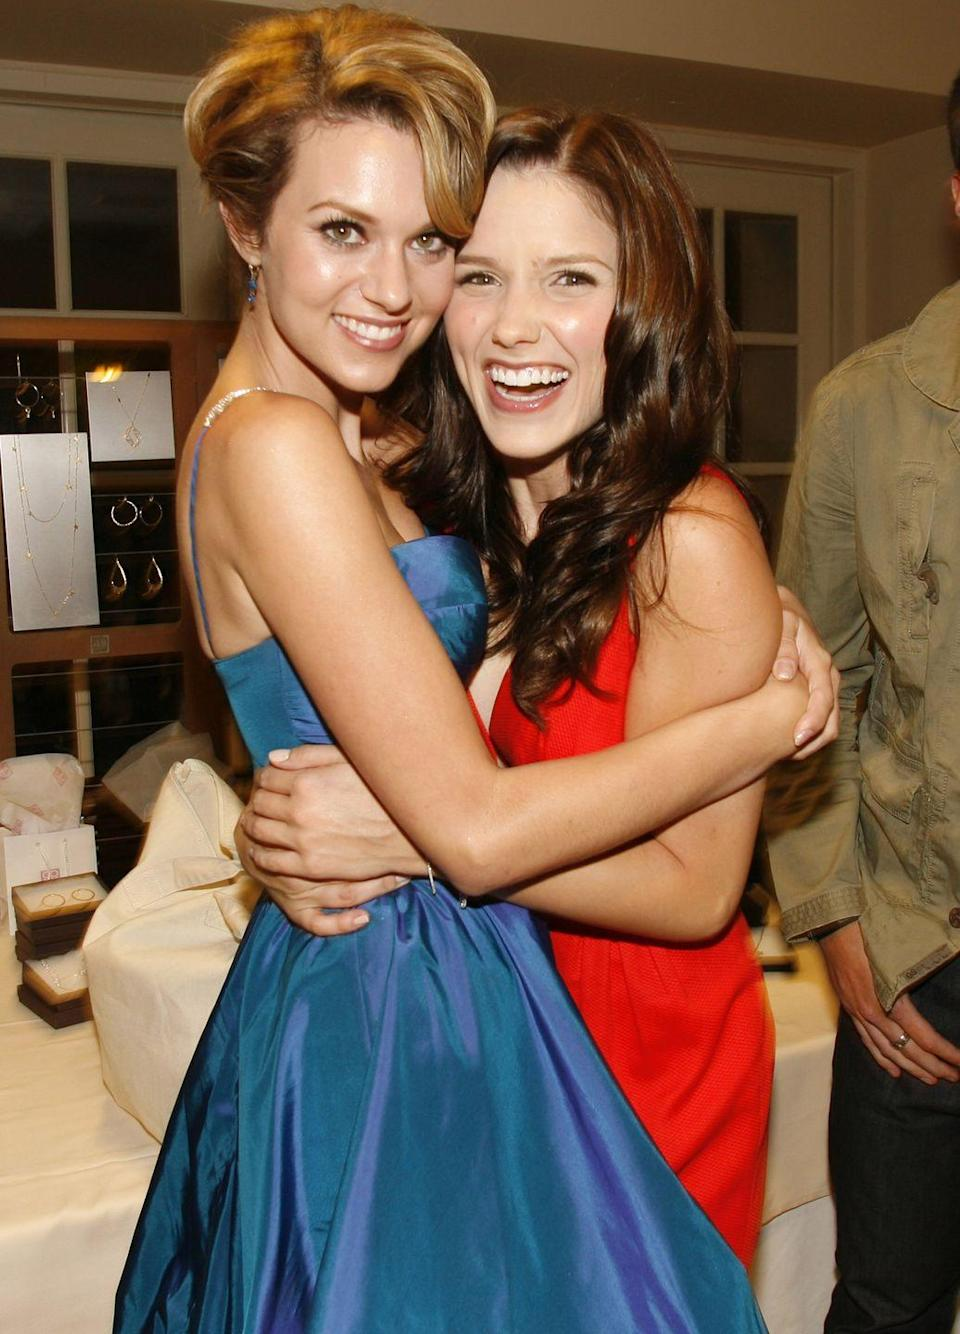 """<p>""""Sophia Bush is a hurricane of a woman. It's impossible not to get swept up in her enthusiasm, her activism, and her rabid curiosity about life. We're born only 7 days apart, and so I've been fortunate to find in her a star sister.....a sensitive, no bullsh*t, nurturer."""" — Hilarie Burton, <a href=""""https://www.bustle.com/p/sophia-bush-is-the-internets-dream-best-friend-but-shes-still-only-human-9431815"""" rel=""""nofollow noopener"""" target=""""_blank"""" data-ylk=""""slk:Bustle"""" class=""""link rapid-noclick-resp"""">Bustle</a></p><p>""""You're a champion for your community. An incredible mom. You're the alpaca whisperer. You're whip smart and razor sharp and deeply tender. There is no one I would have rather been on the world's most insane roller coaster with."""" — Sophia Bush to Burton on <a href=""""https://www.instagram.com/p/BWAuXUTDzmx/?hl=en"""" rel=""""nofollow noopener"""" target=""""_blank"""" data-ylk=""""slk:Instagram"""" class=""""link rapid-noclick-resp"""">Instagram</a></p>"""